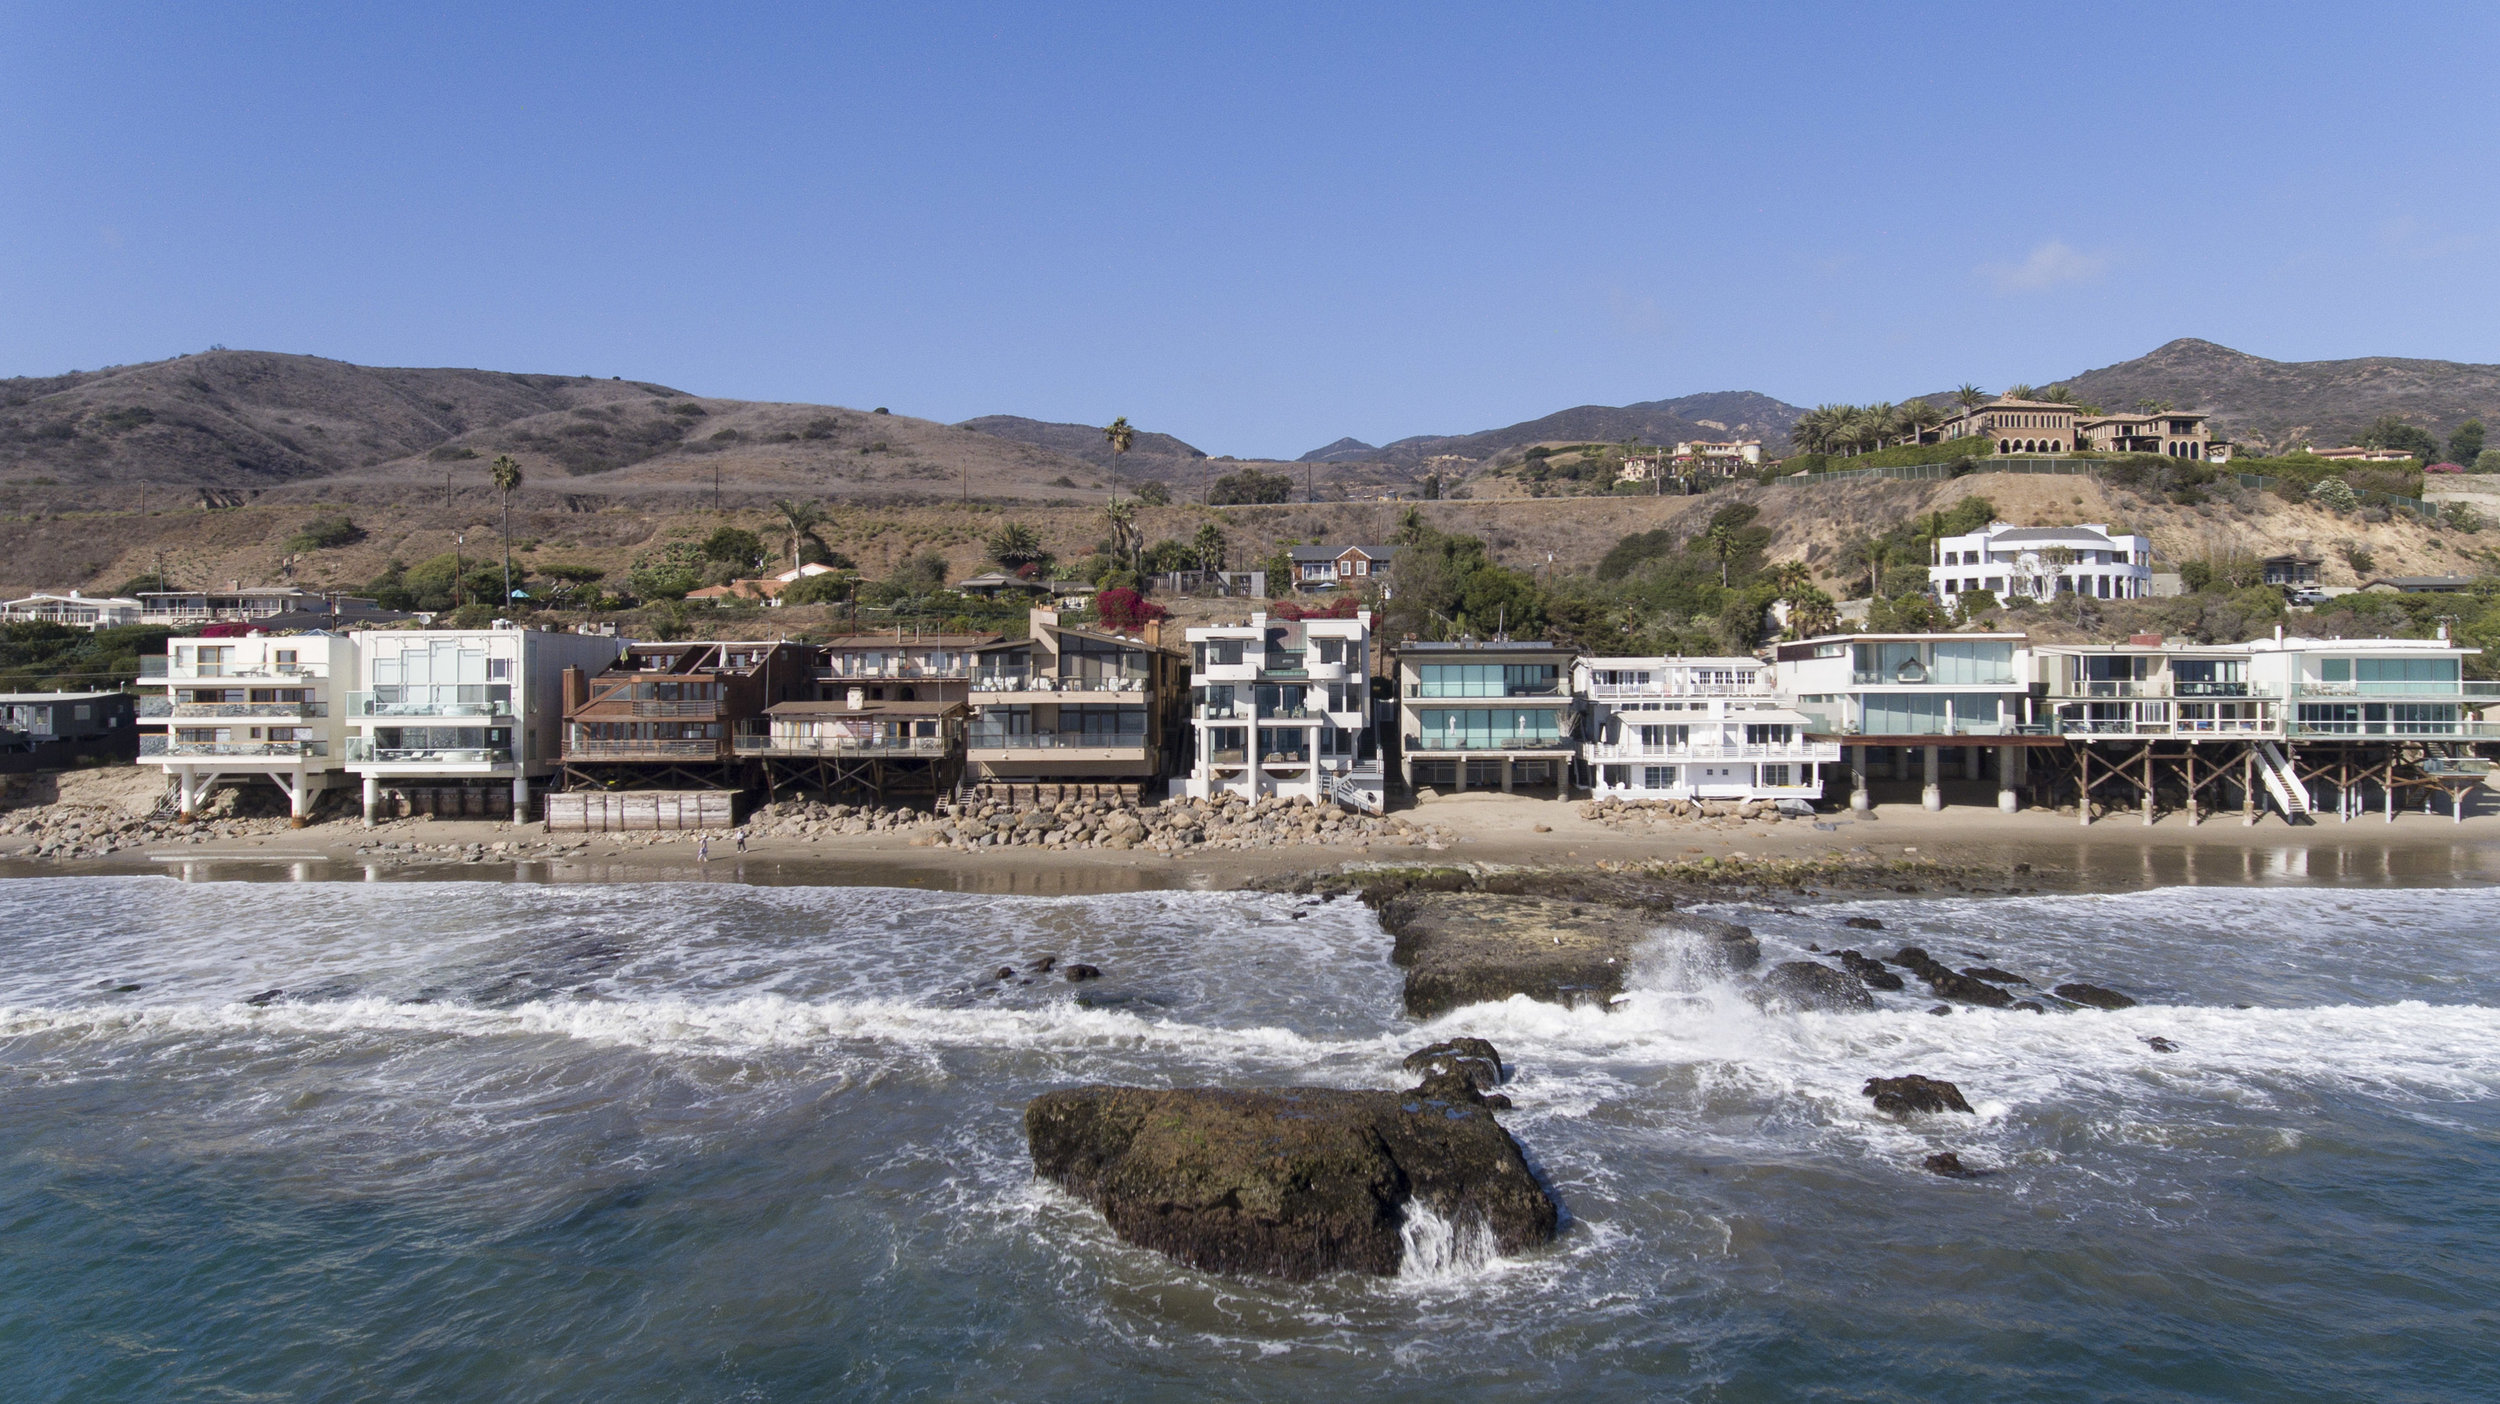 028 Aeiral 25252 Malibu Road For Sale Lease The Malibu Life Team Luxury Real Estate.jpg